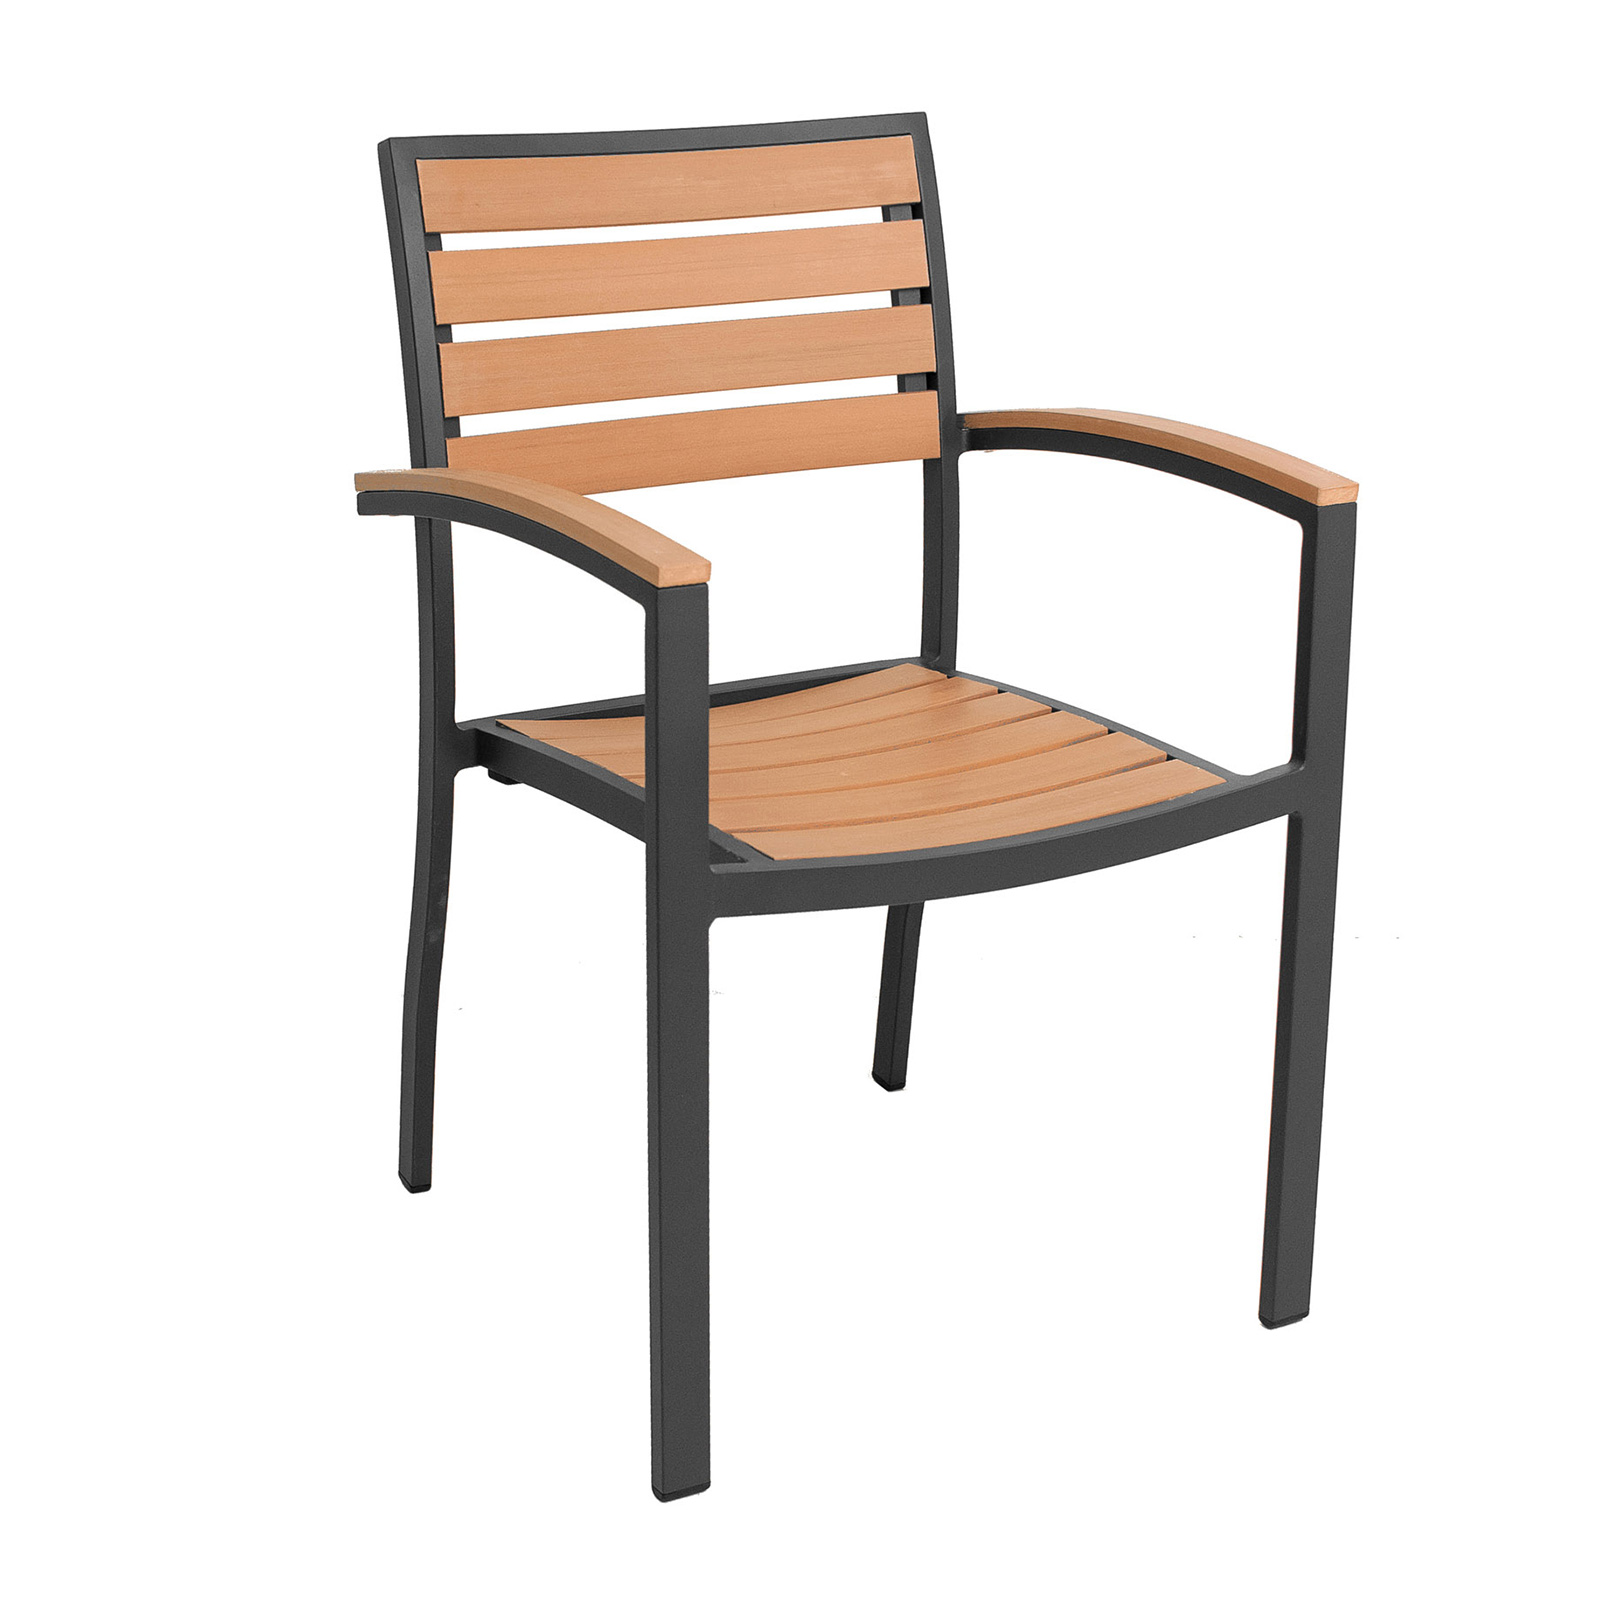 Florida Seating AL-5602 chair, armchair, stacking, outdoor